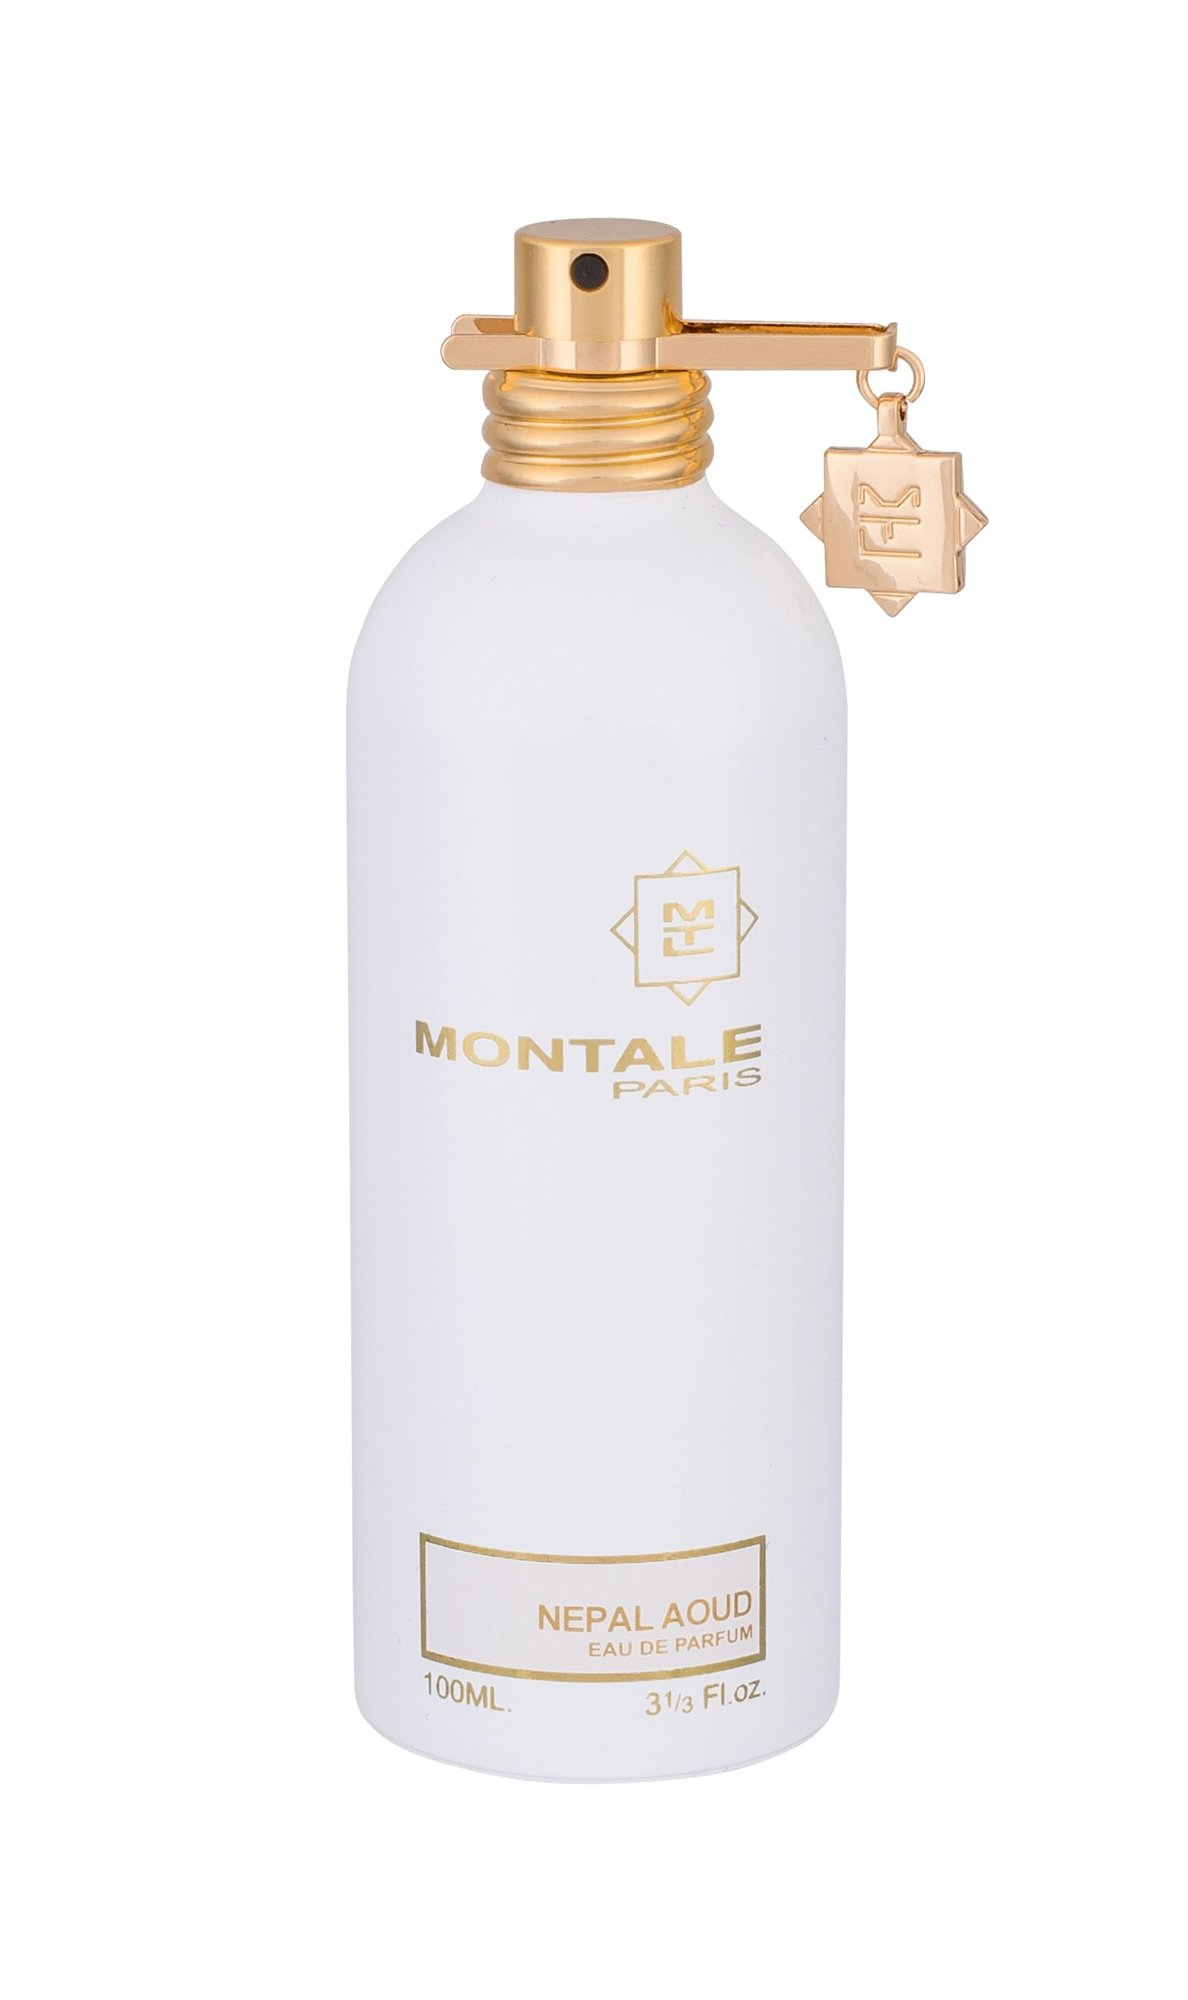 Montale Paris Nepal Aoud EDP 100ml